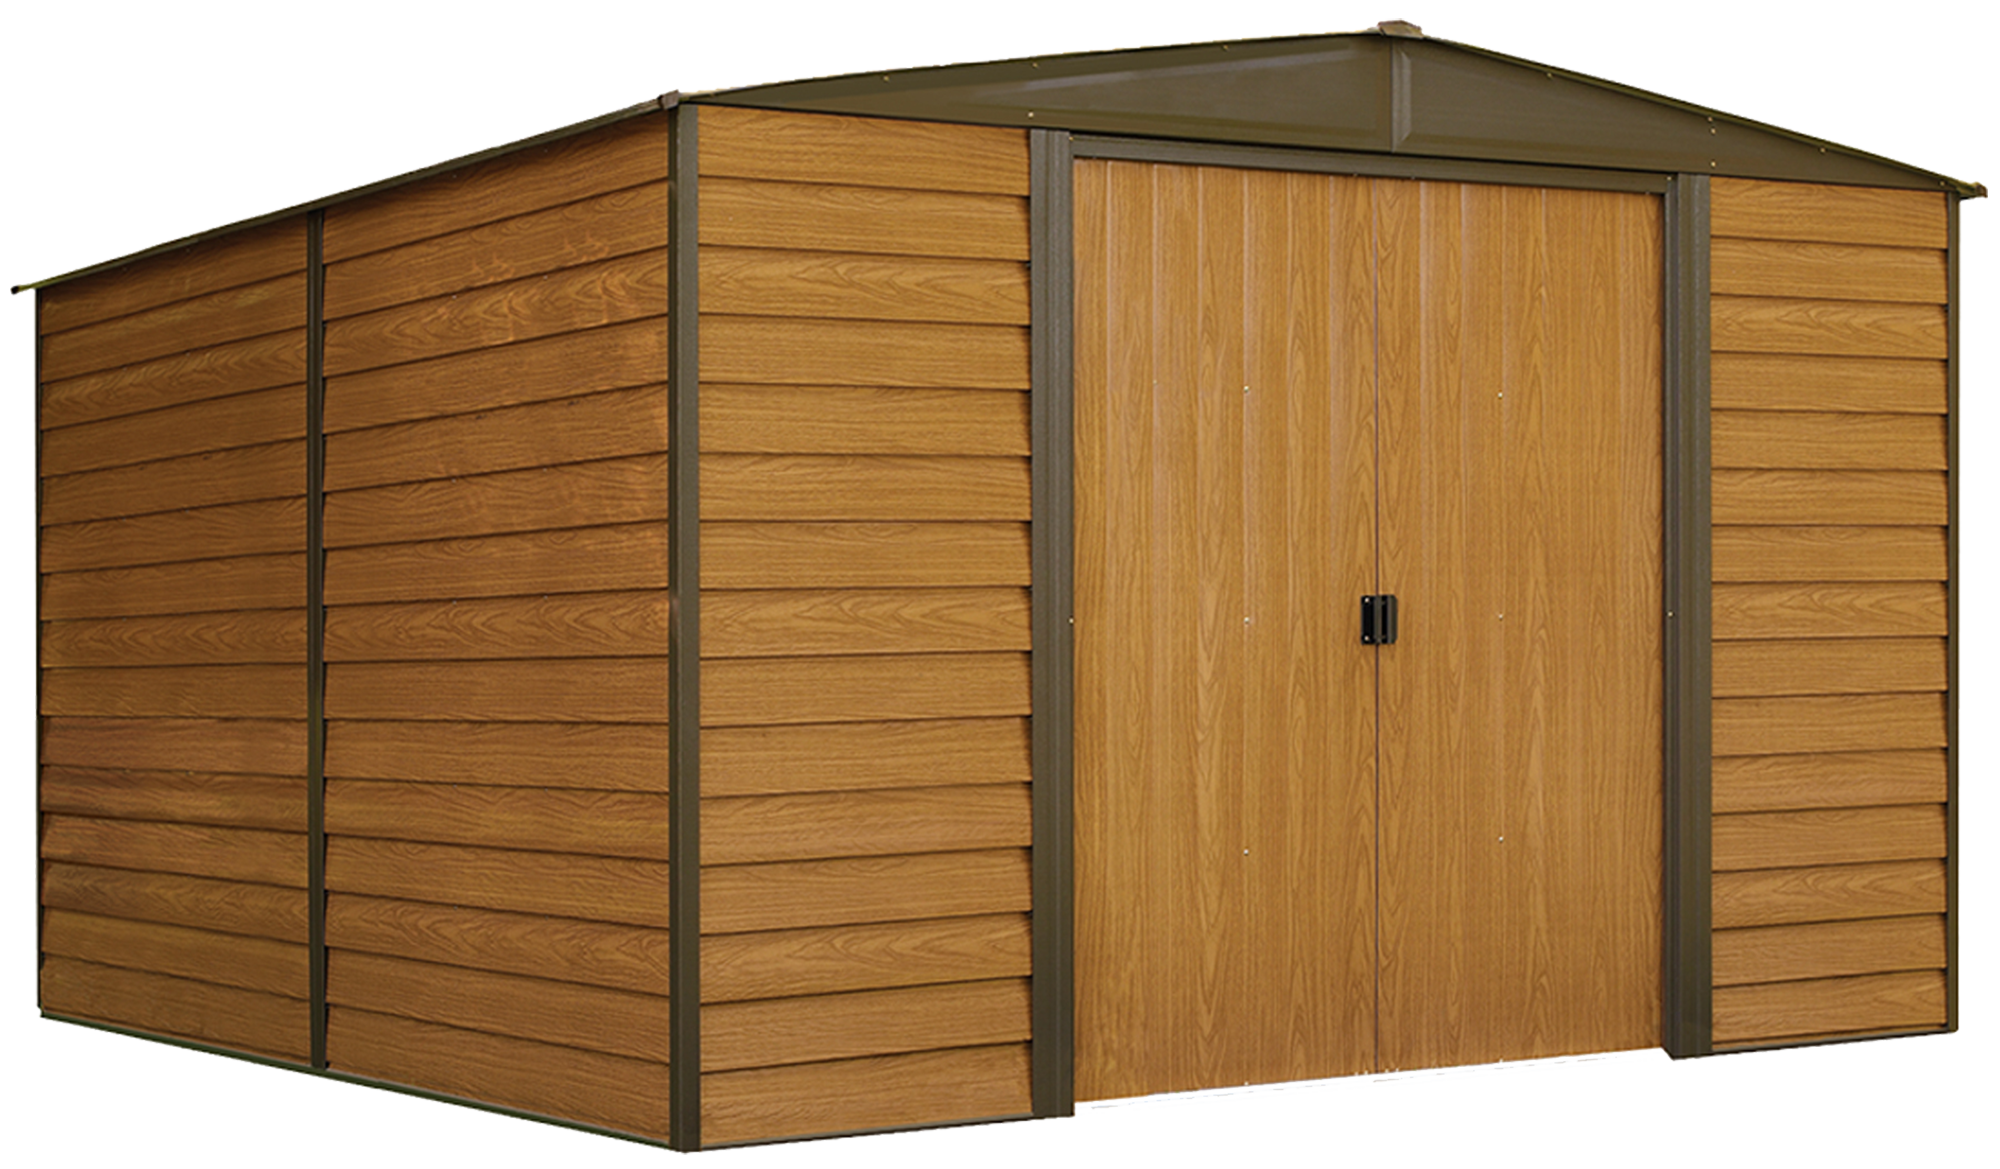 Arrow Woodridge Shed, 10 x 8 ft, Steel Shed with Wood Finish for Outdoor Storage